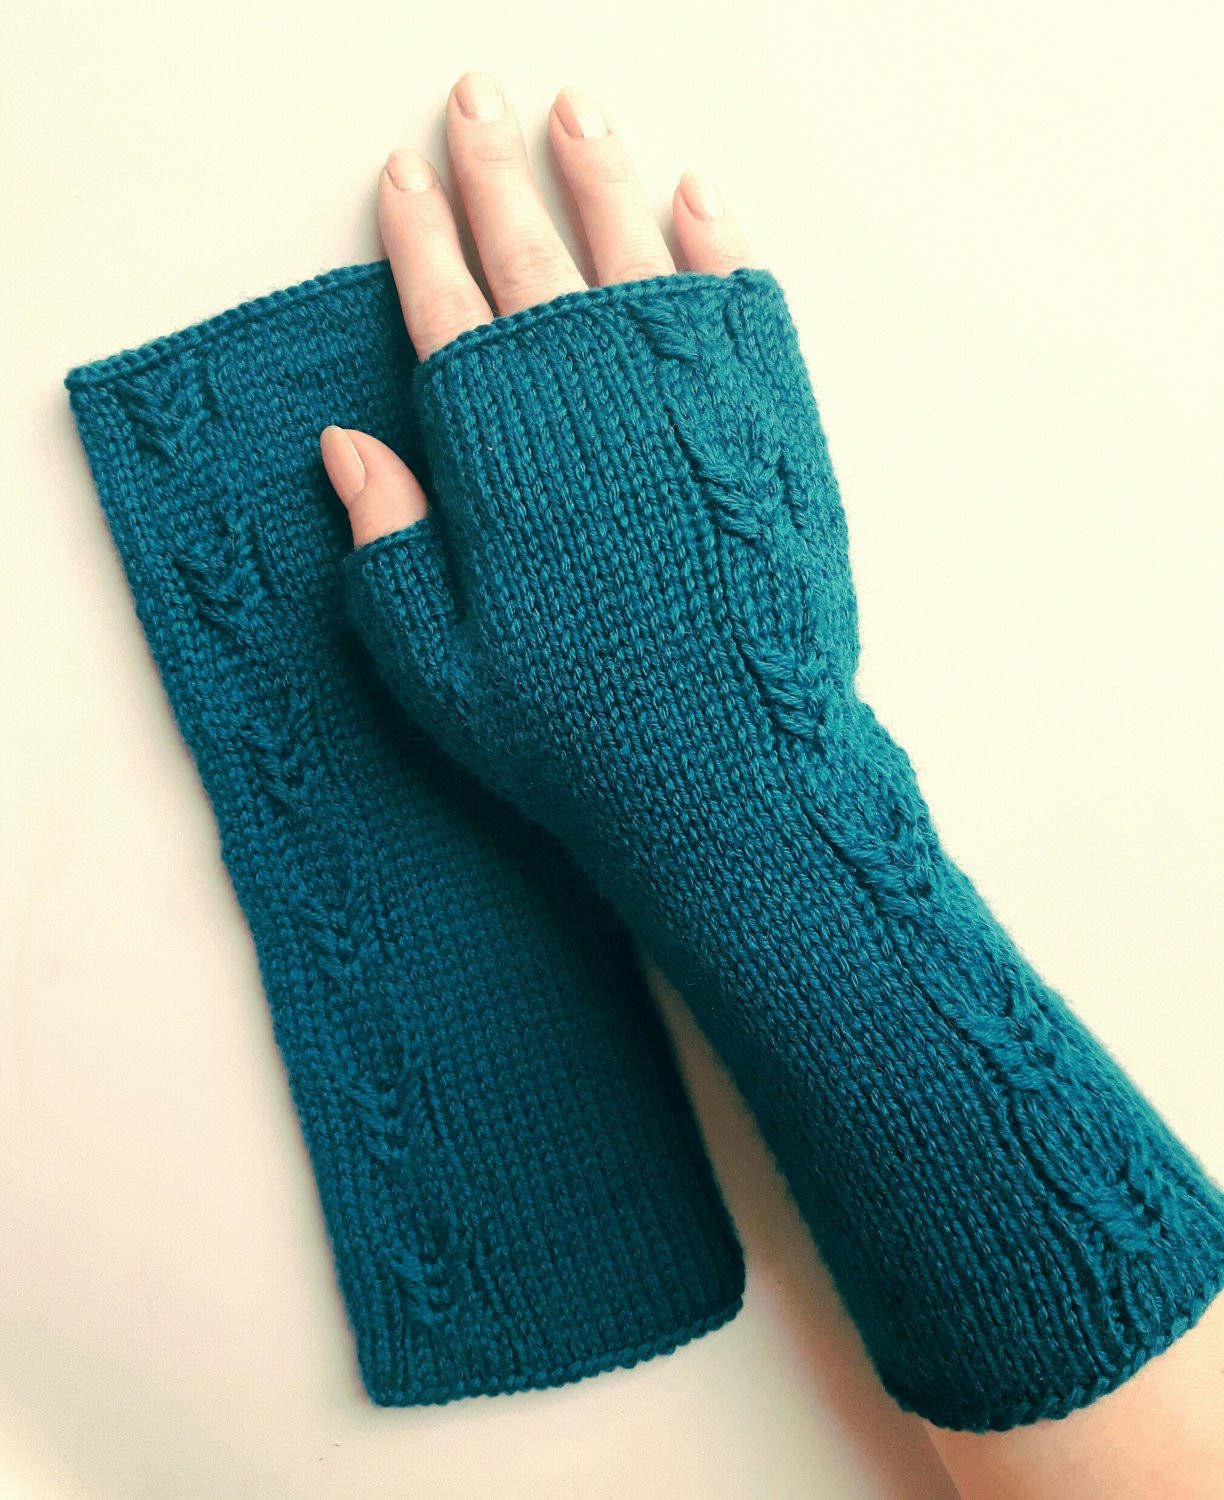 Knit Fingerless Gloves Inspirational Hand Knit Fingerless Gloves Teal Womens Gloves Warm Armwarmers Of Gorgeous 47 Pics Knit Fingerless Gloves